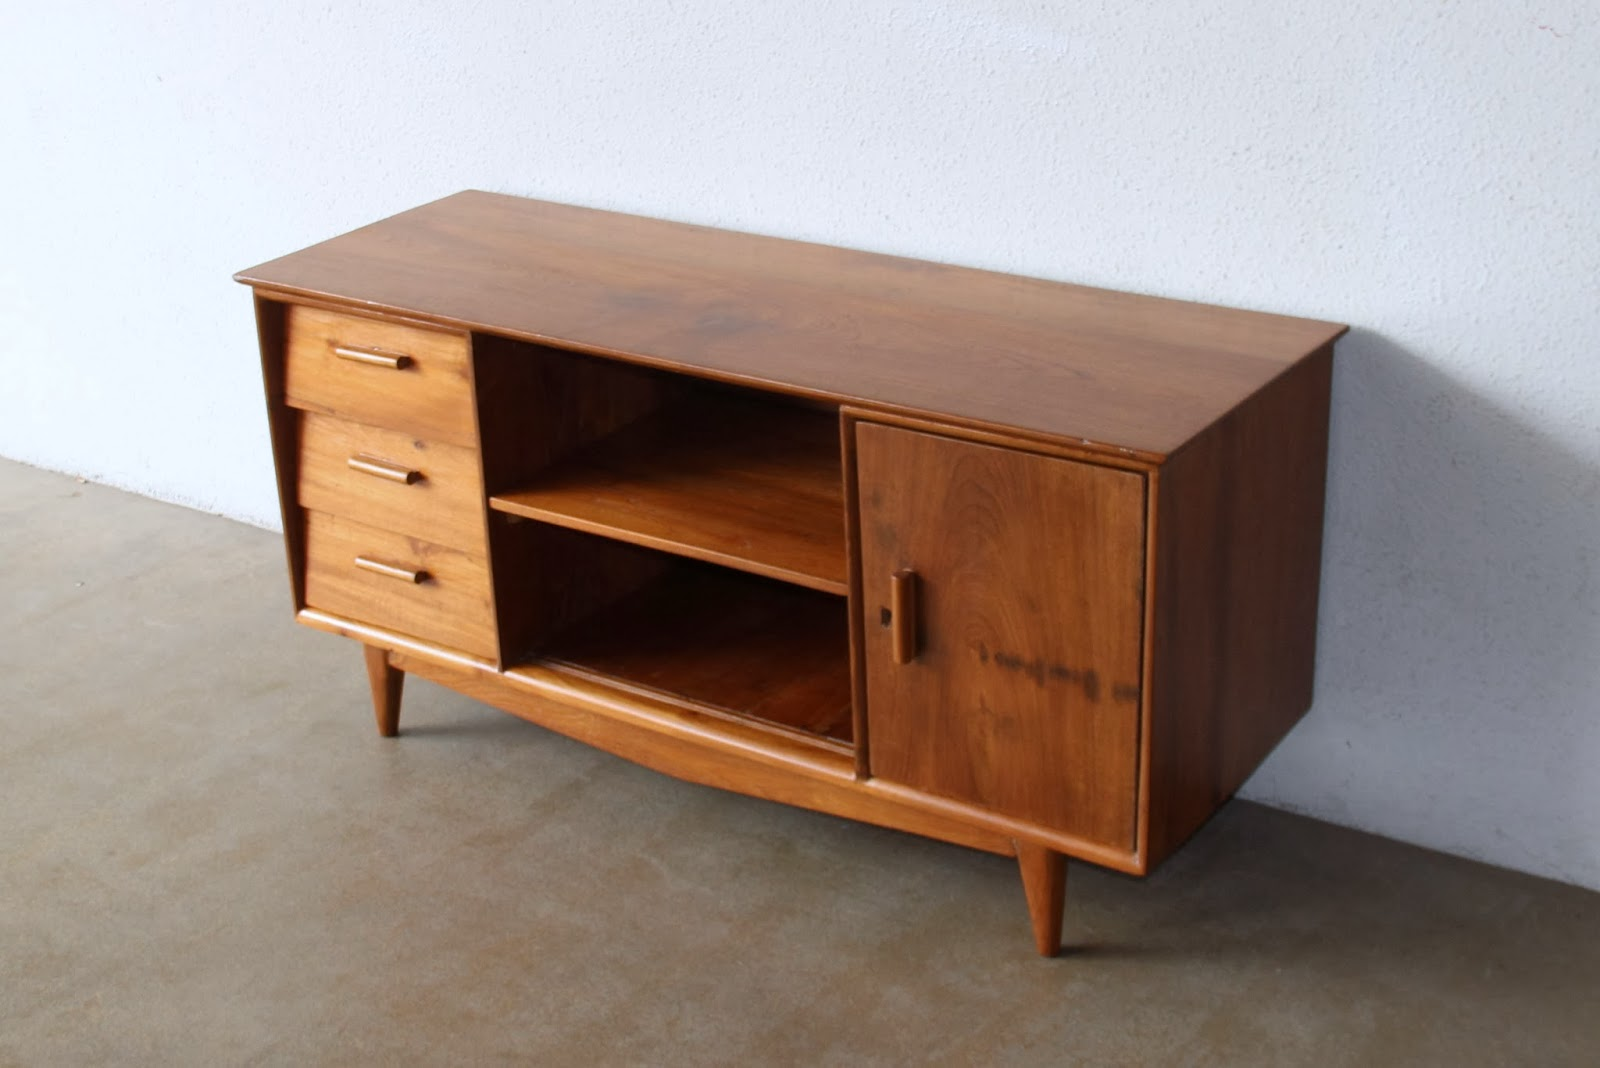 Sideboard 120 Cm ~ Second charm: december 2013